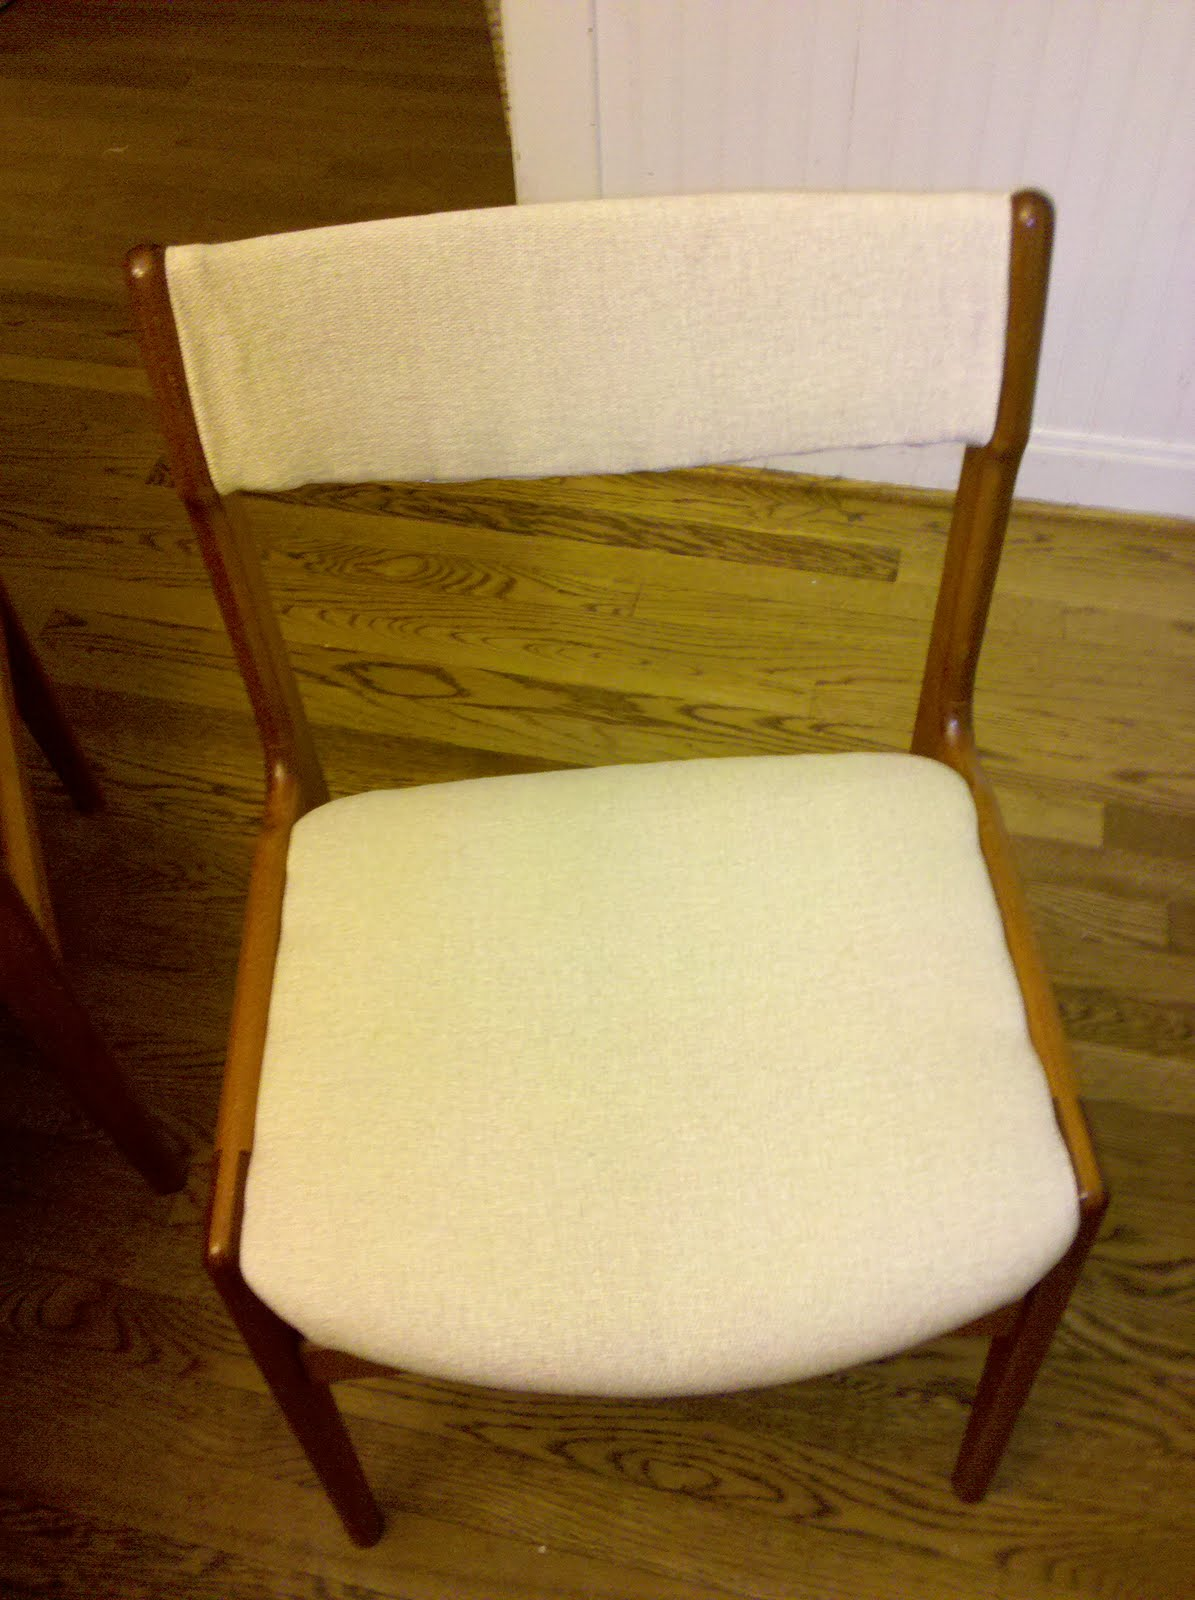 Habitat Dining Room Chair Covers For Hire In East London Thrifty Momma Treasures Recovering Chairs